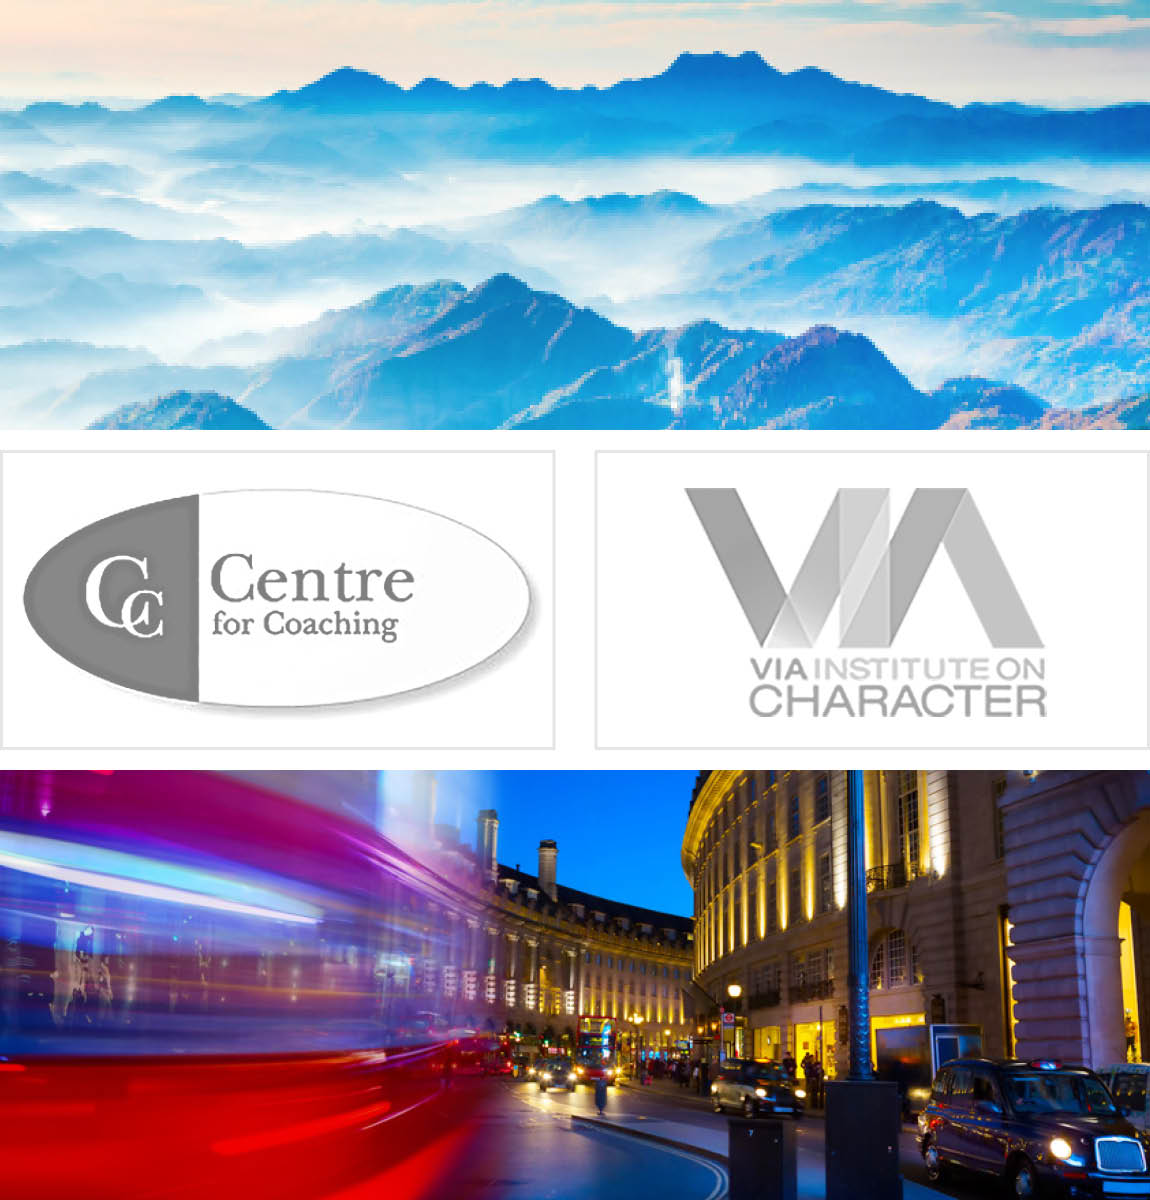 Bild-Collage: Logo Centre for Coaching, Langzeitaufnahme Piccadilly London bei Nacht, blaue Berglandschaft, Logo VIA Institute on Charakter